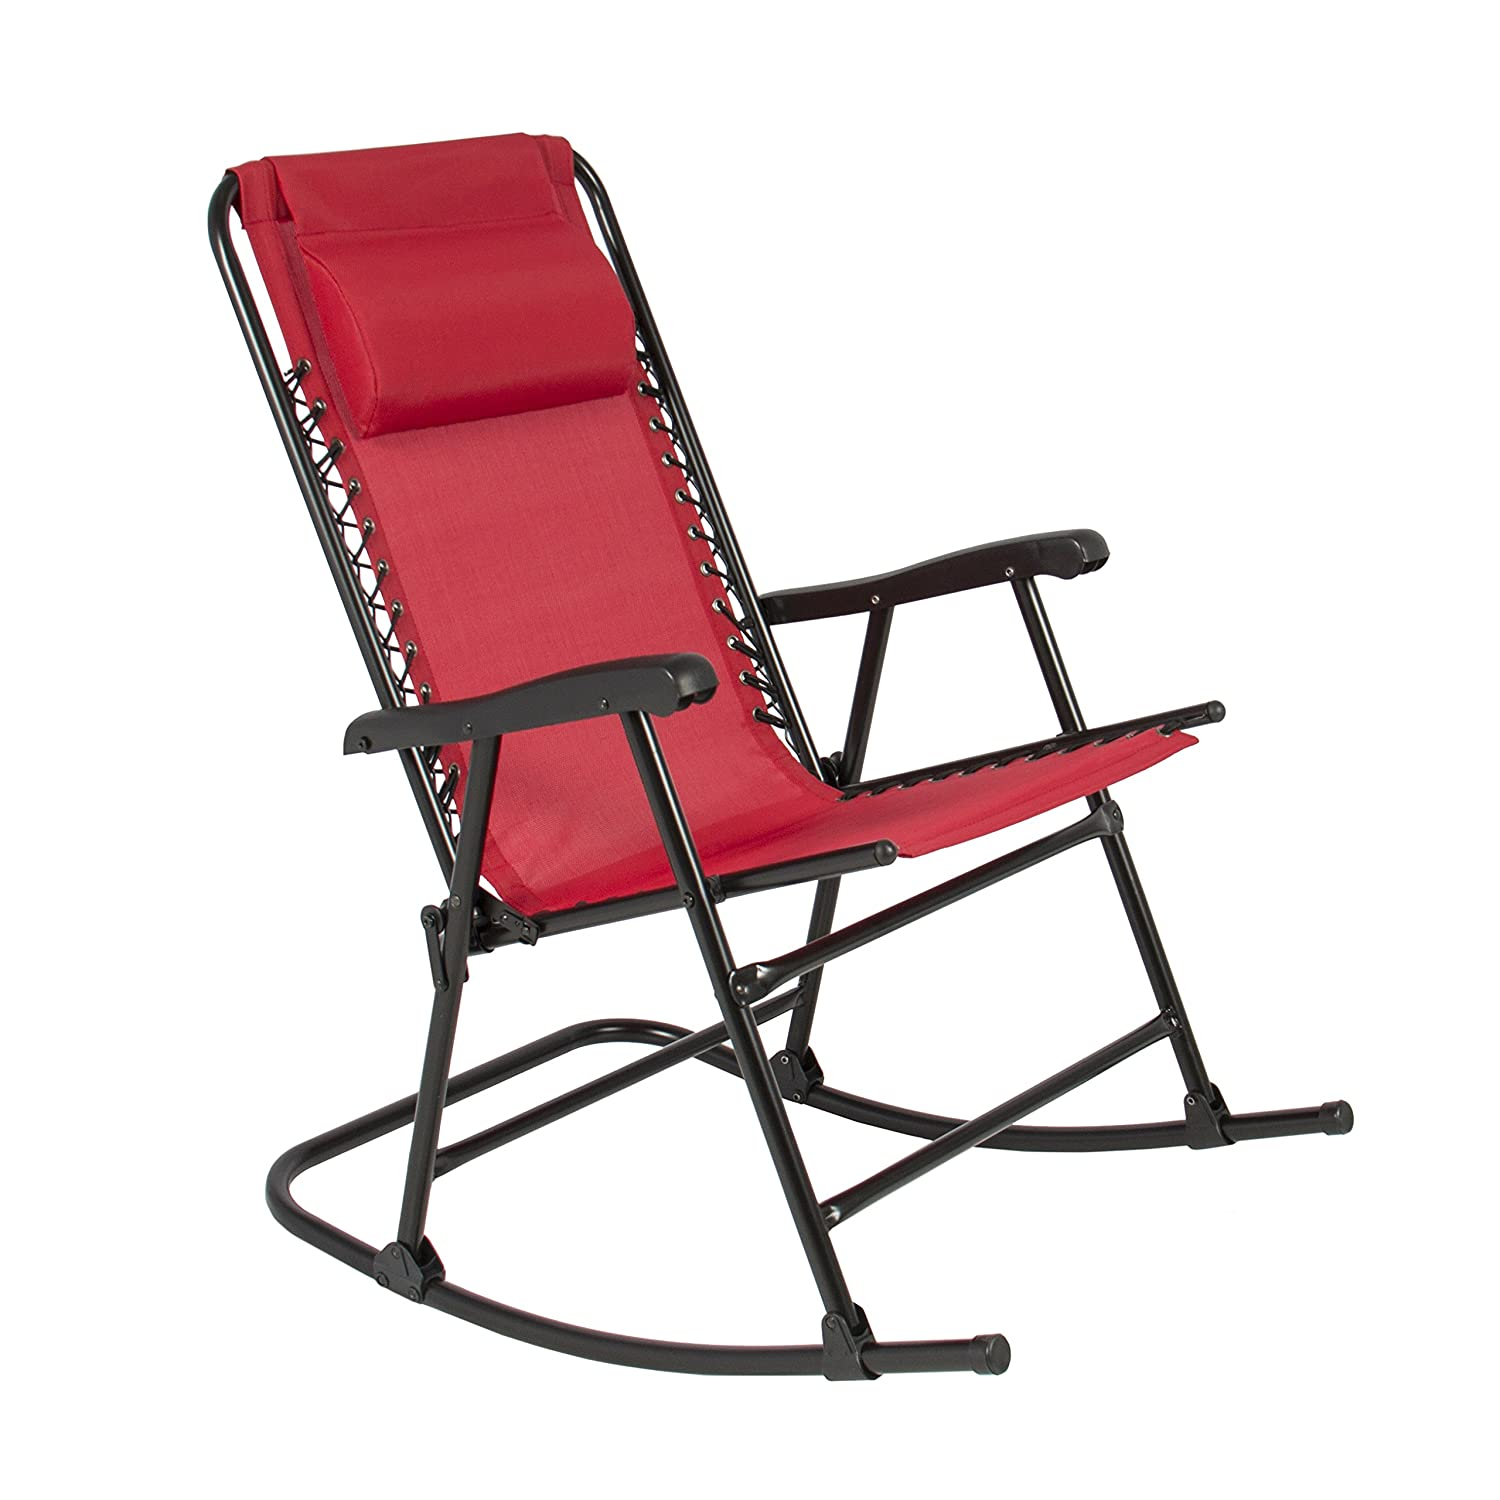 amazoncom  best choice products folding rocking chair foldable  - amazoncom  best choice products folding rocking chair foldable rockeroutdoor patio furniture red  patio lawn  garden